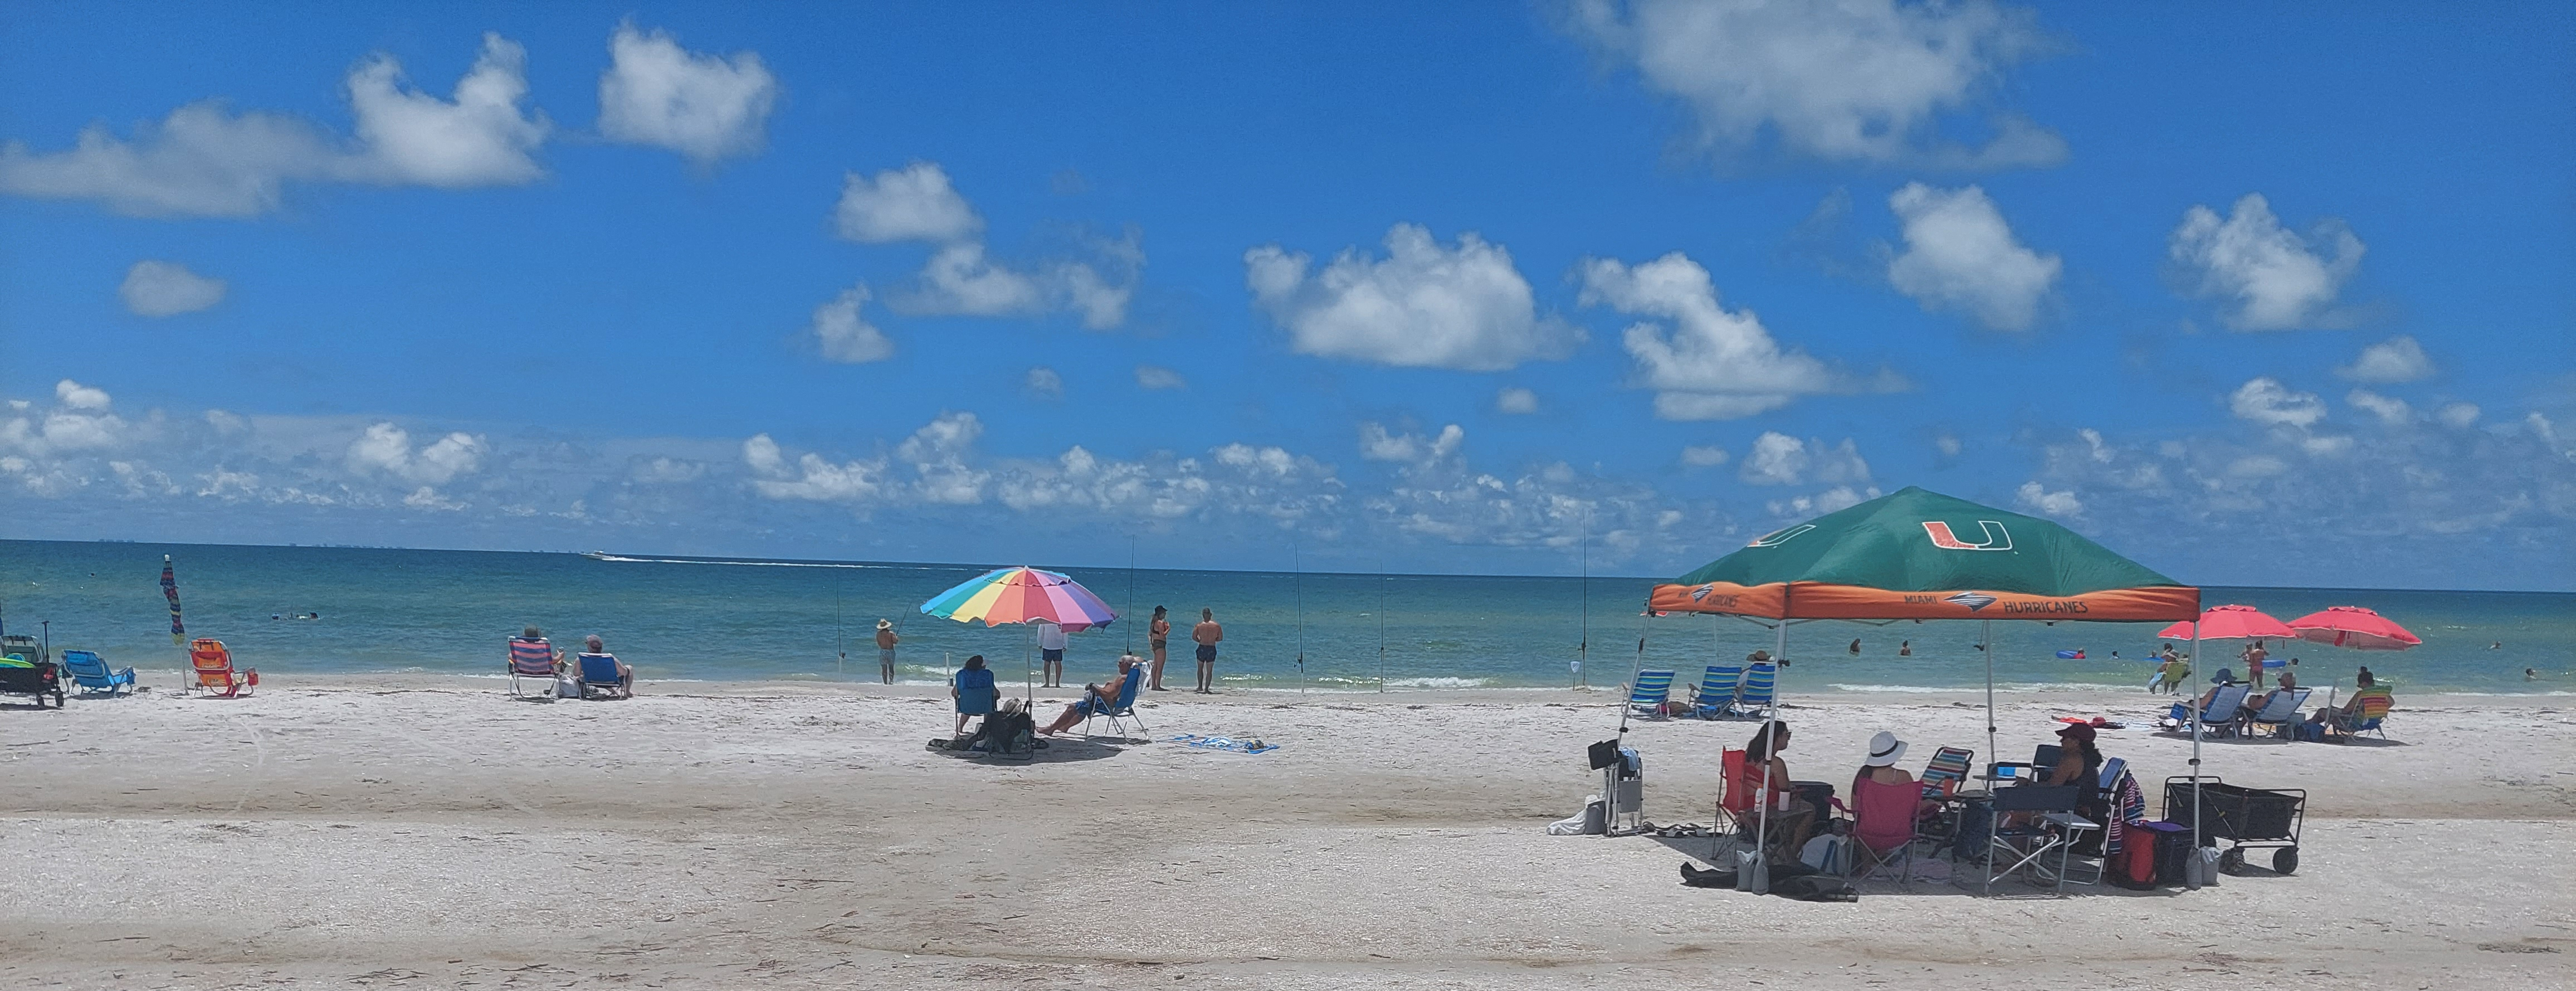 people enjoying a beautiful day at the beach with blue cloudy skies and blue waterwith